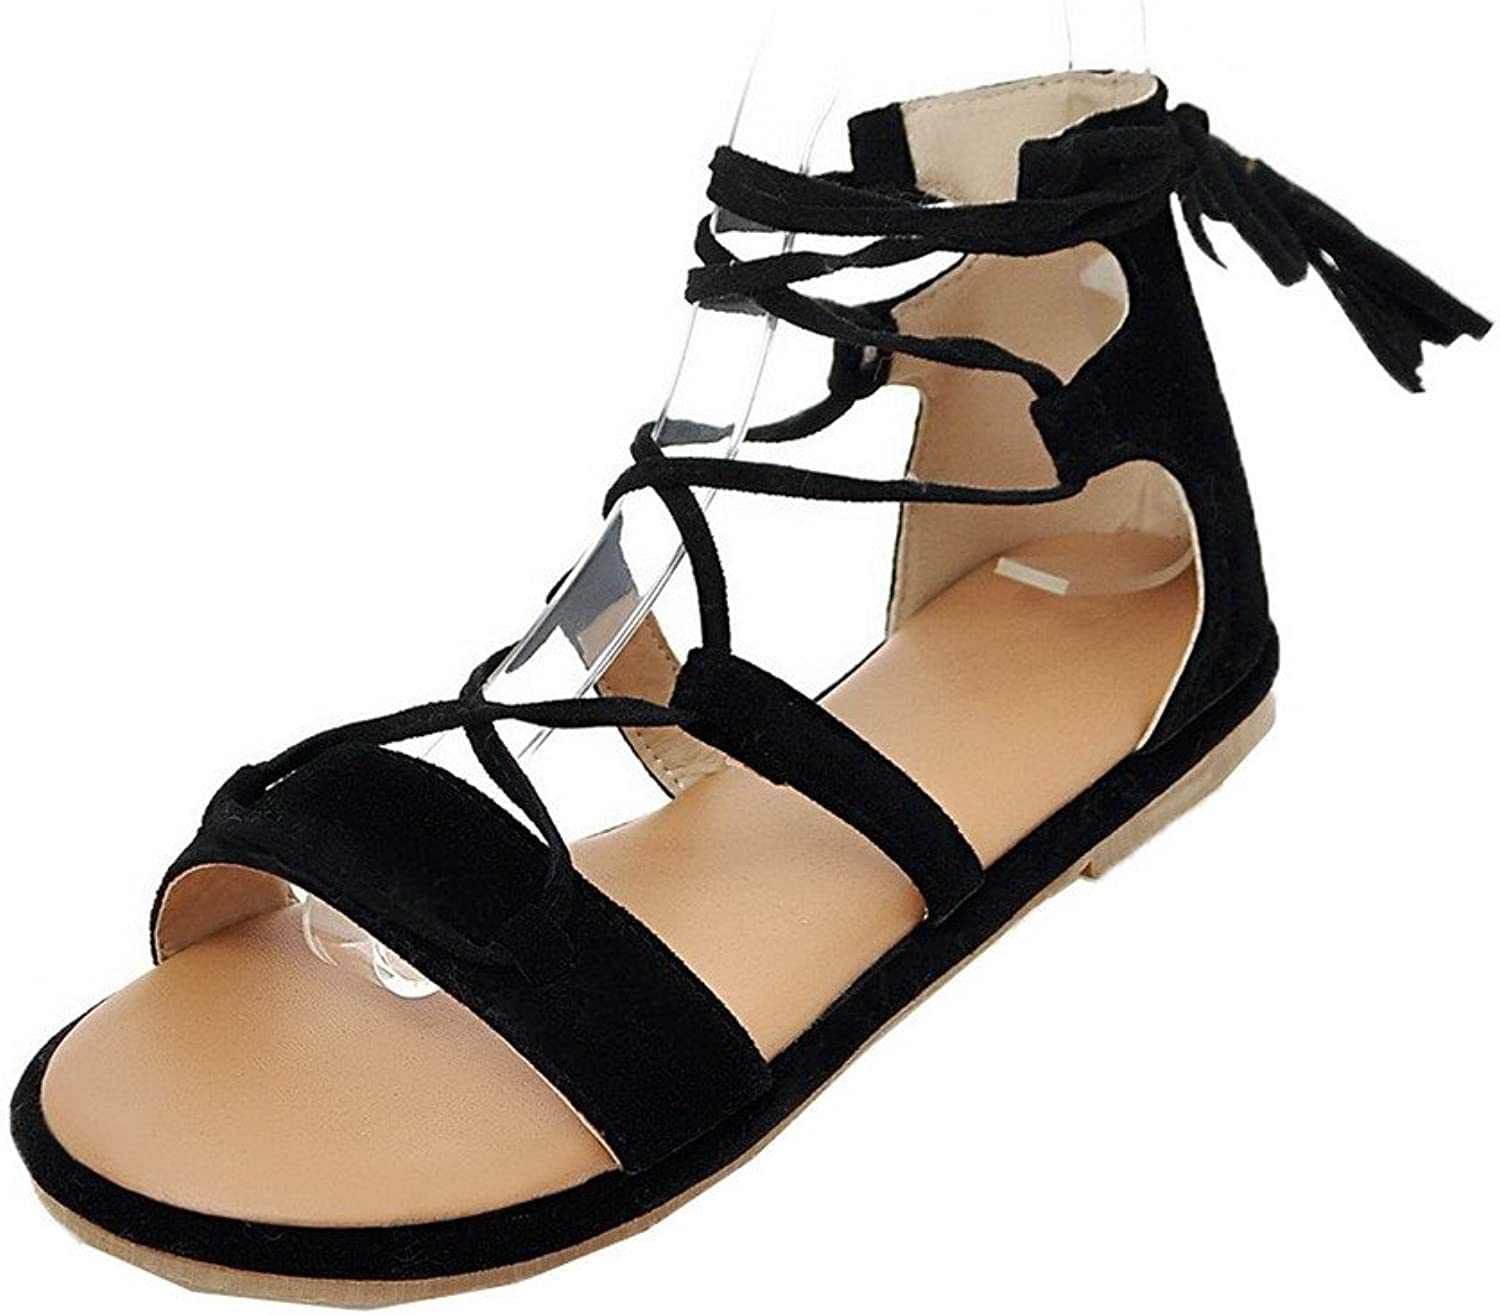 WeiPoot Women's Low-Heels Frosted Solid Lace-up Open-Toe Sandals, EGHLH006585